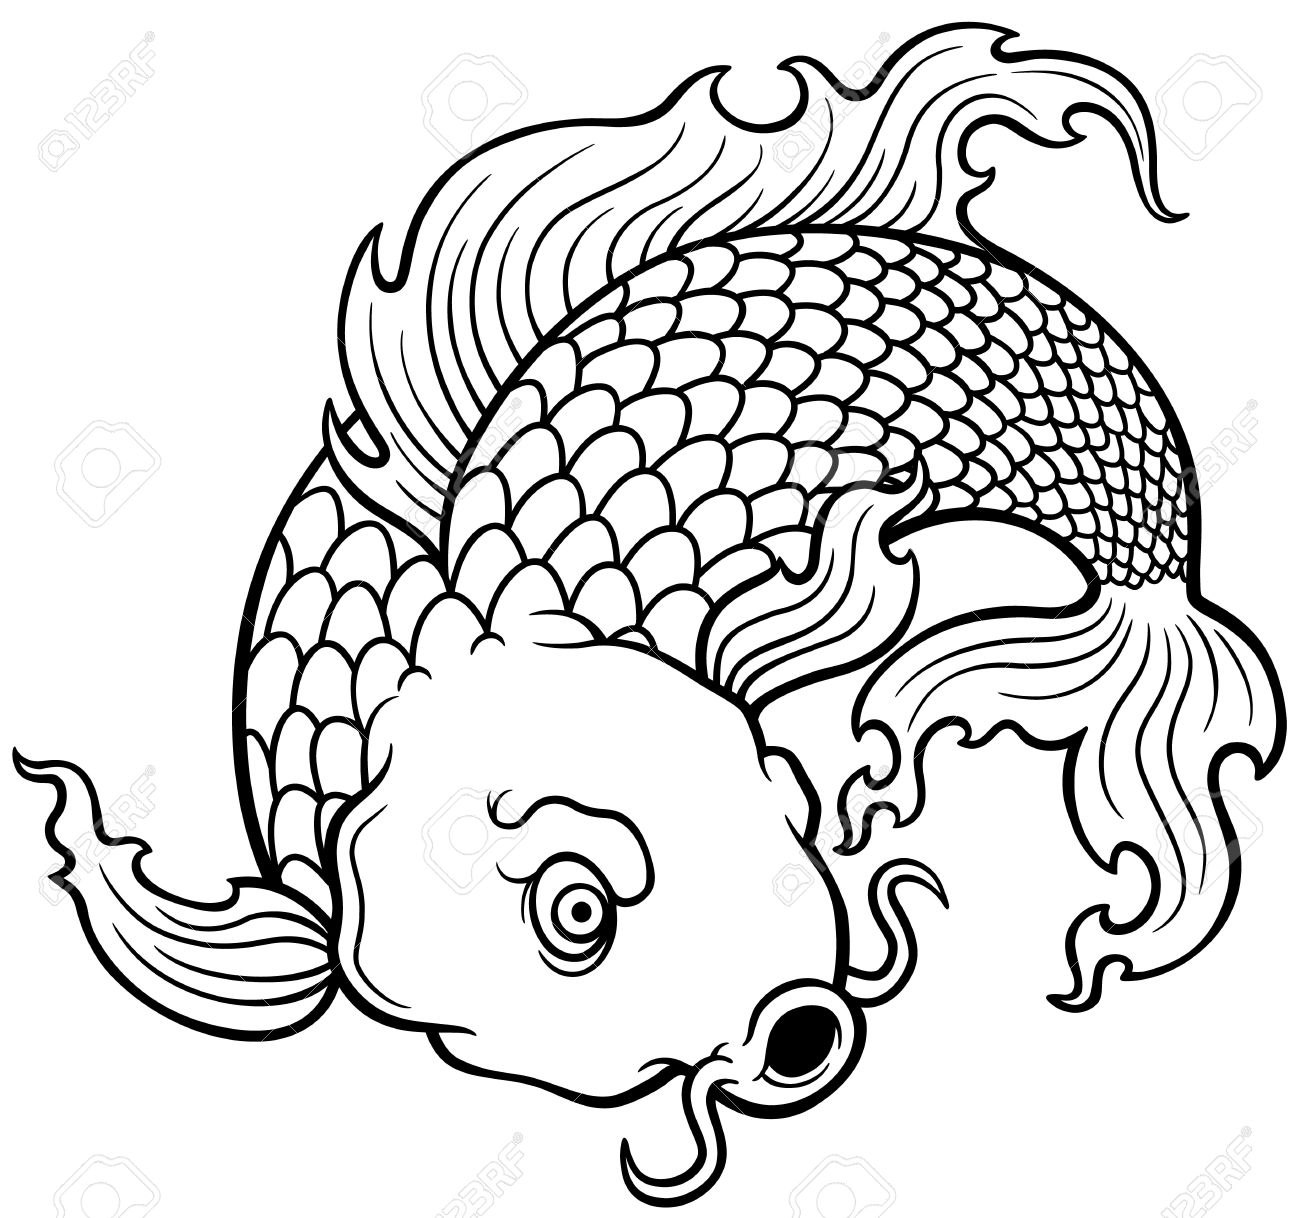 dating online sites free fish printable coloring pages printable worksheets